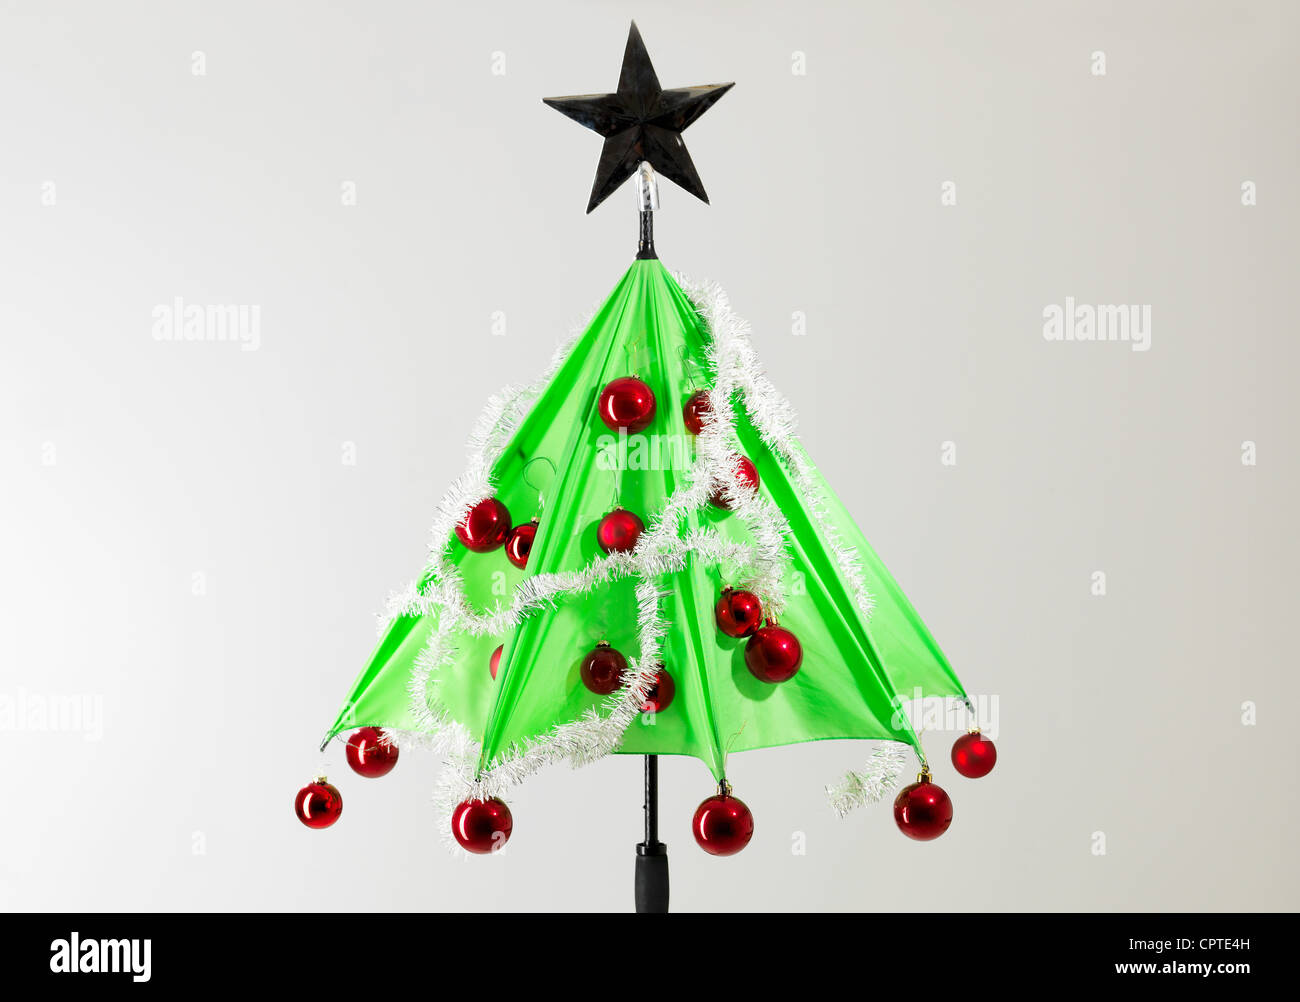 Green umbrella with Christmas decorations against white background - Stock Image